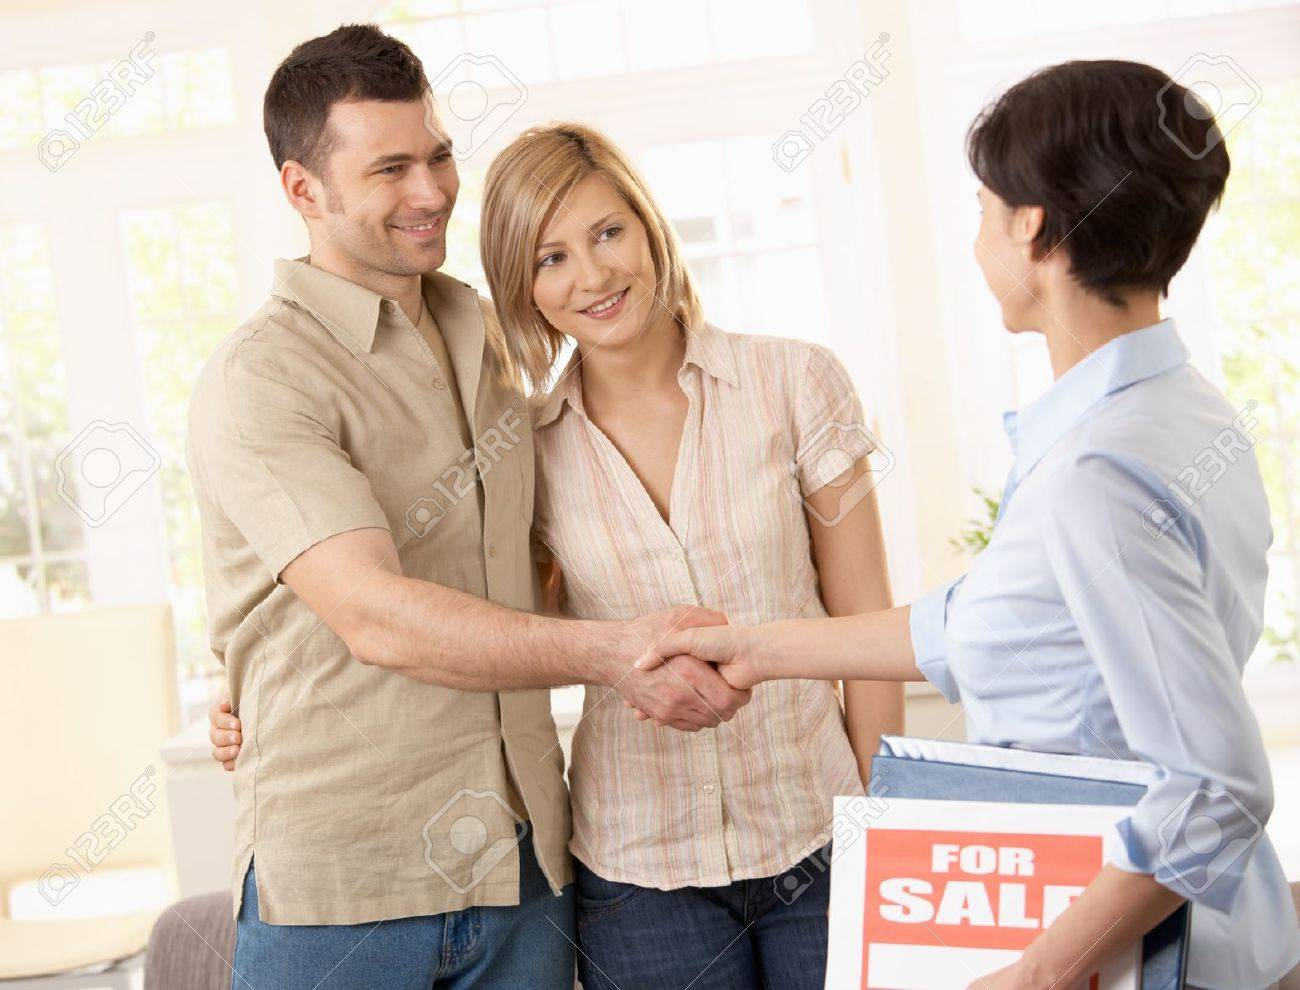 Estate agent congratulating young couple on making deal on new house. Stock Photo - 7217276